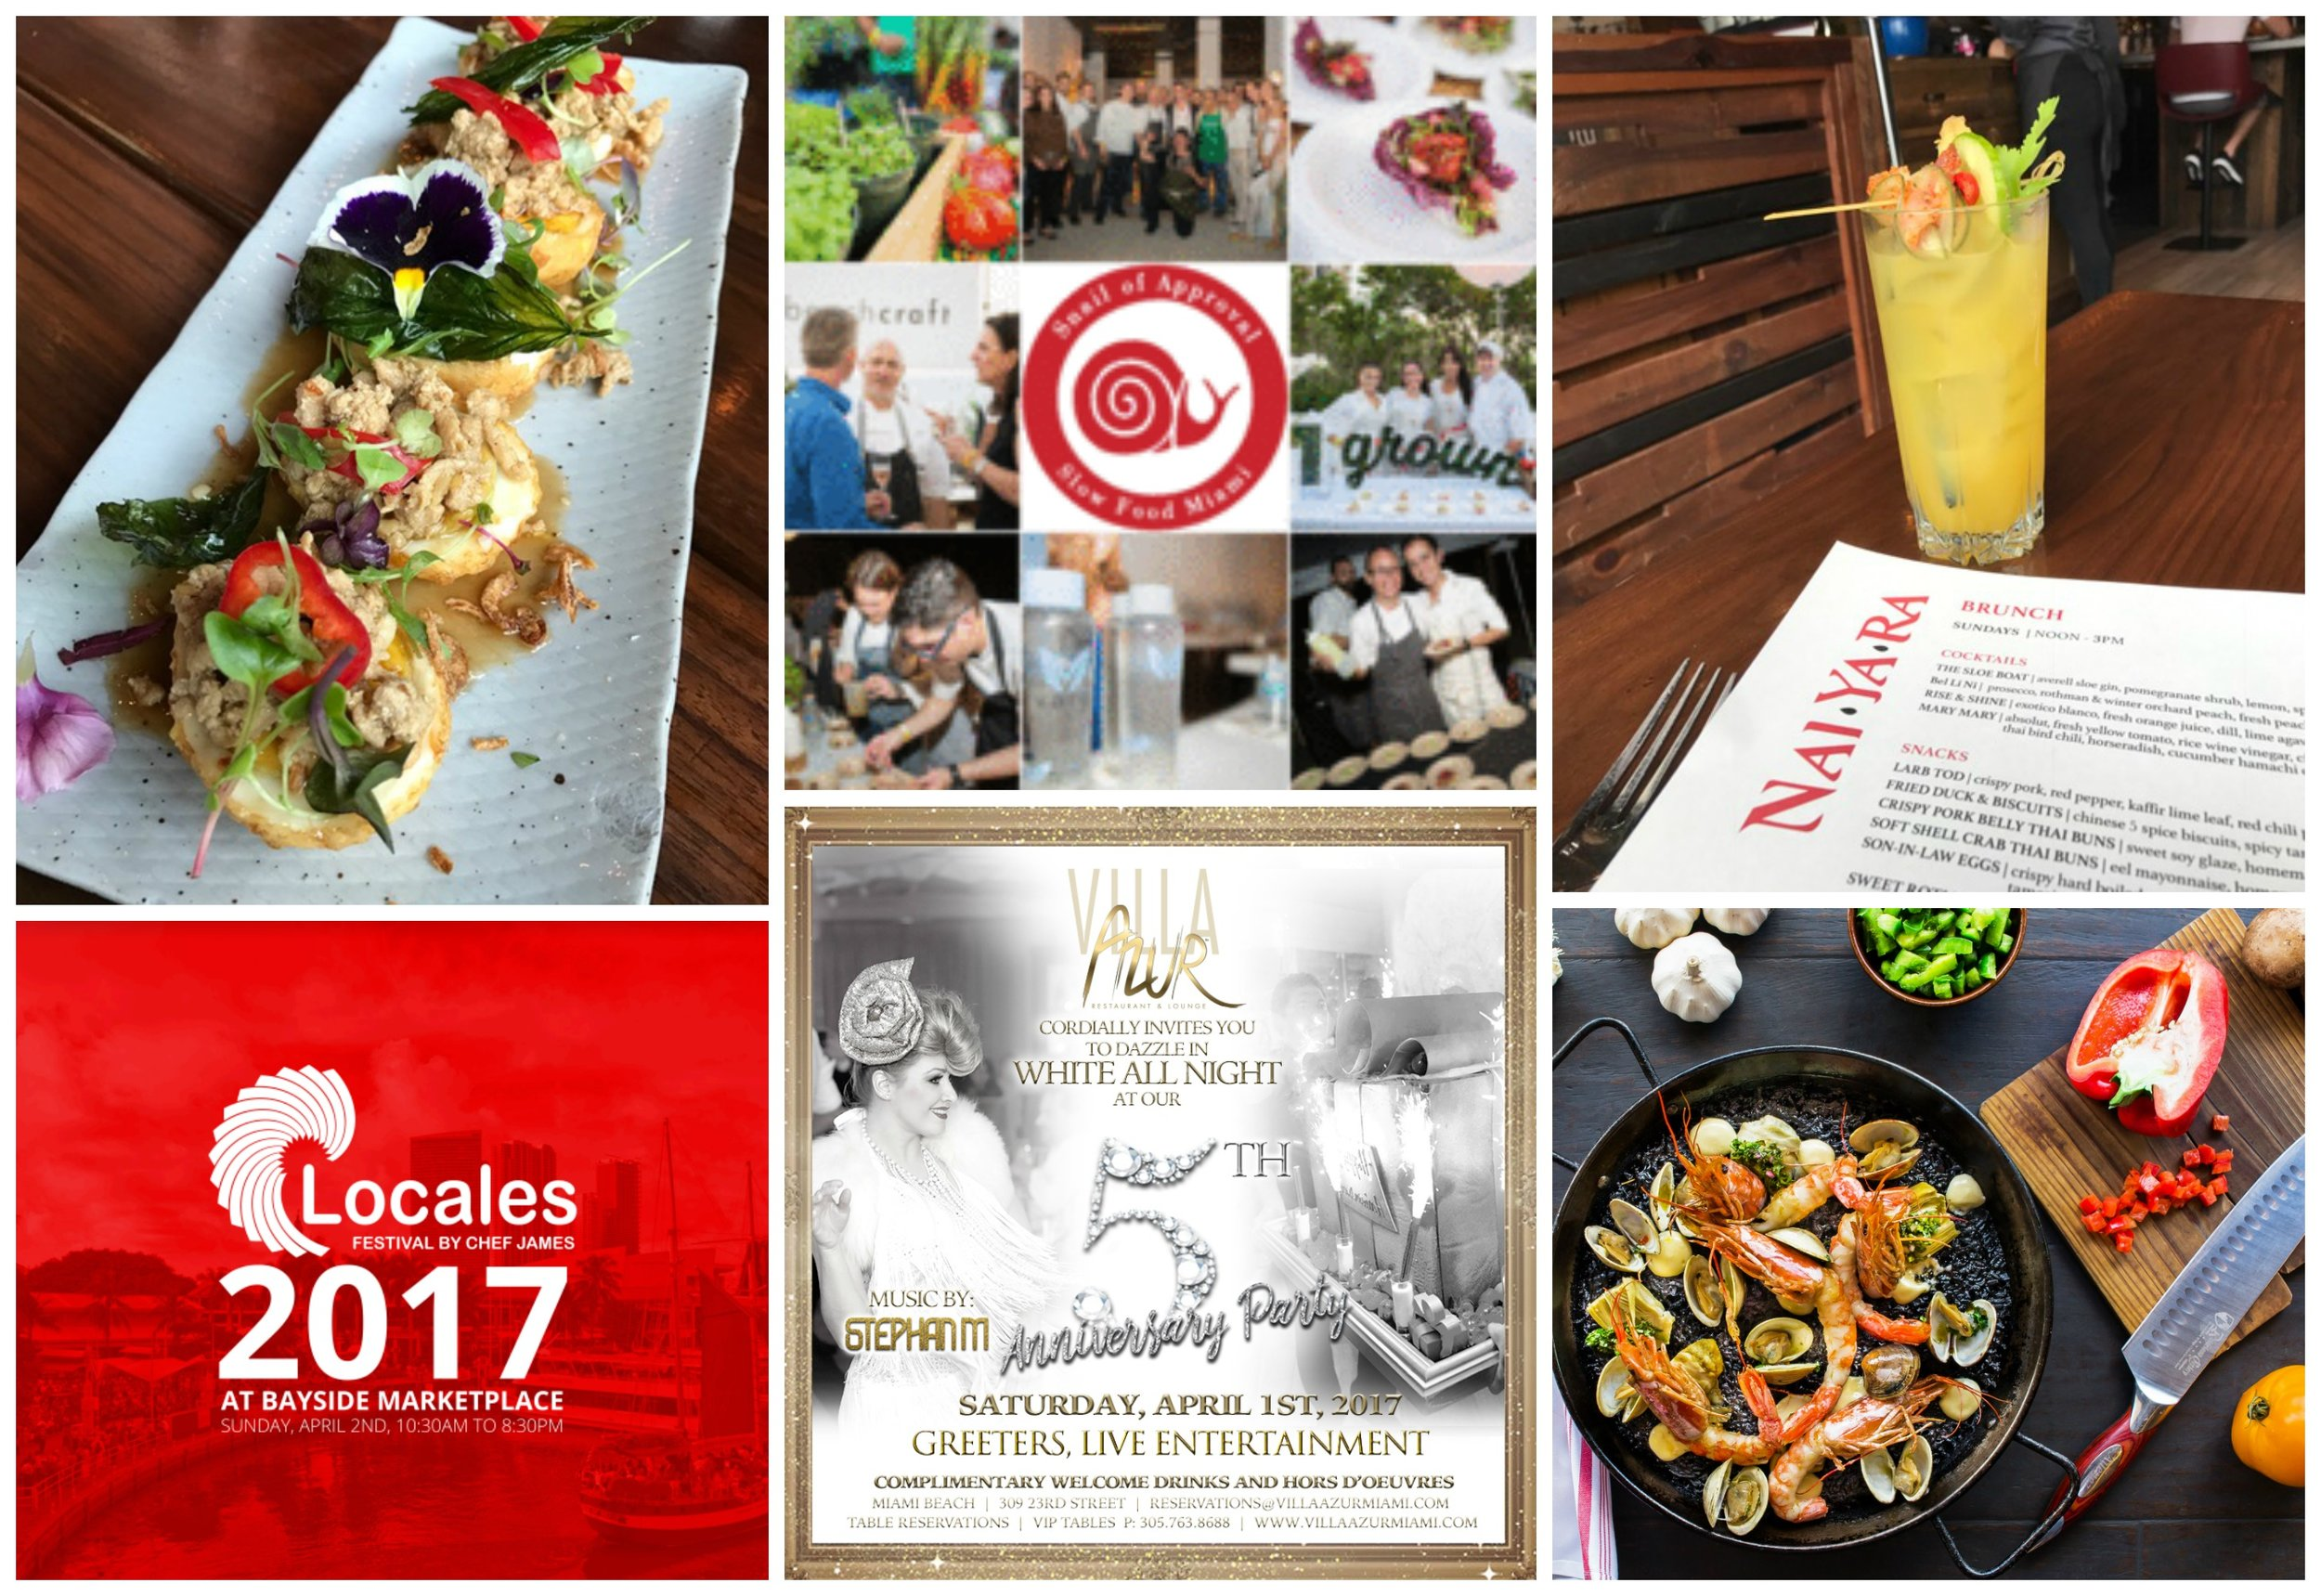 Weekly Nibble Miami Events March 2017